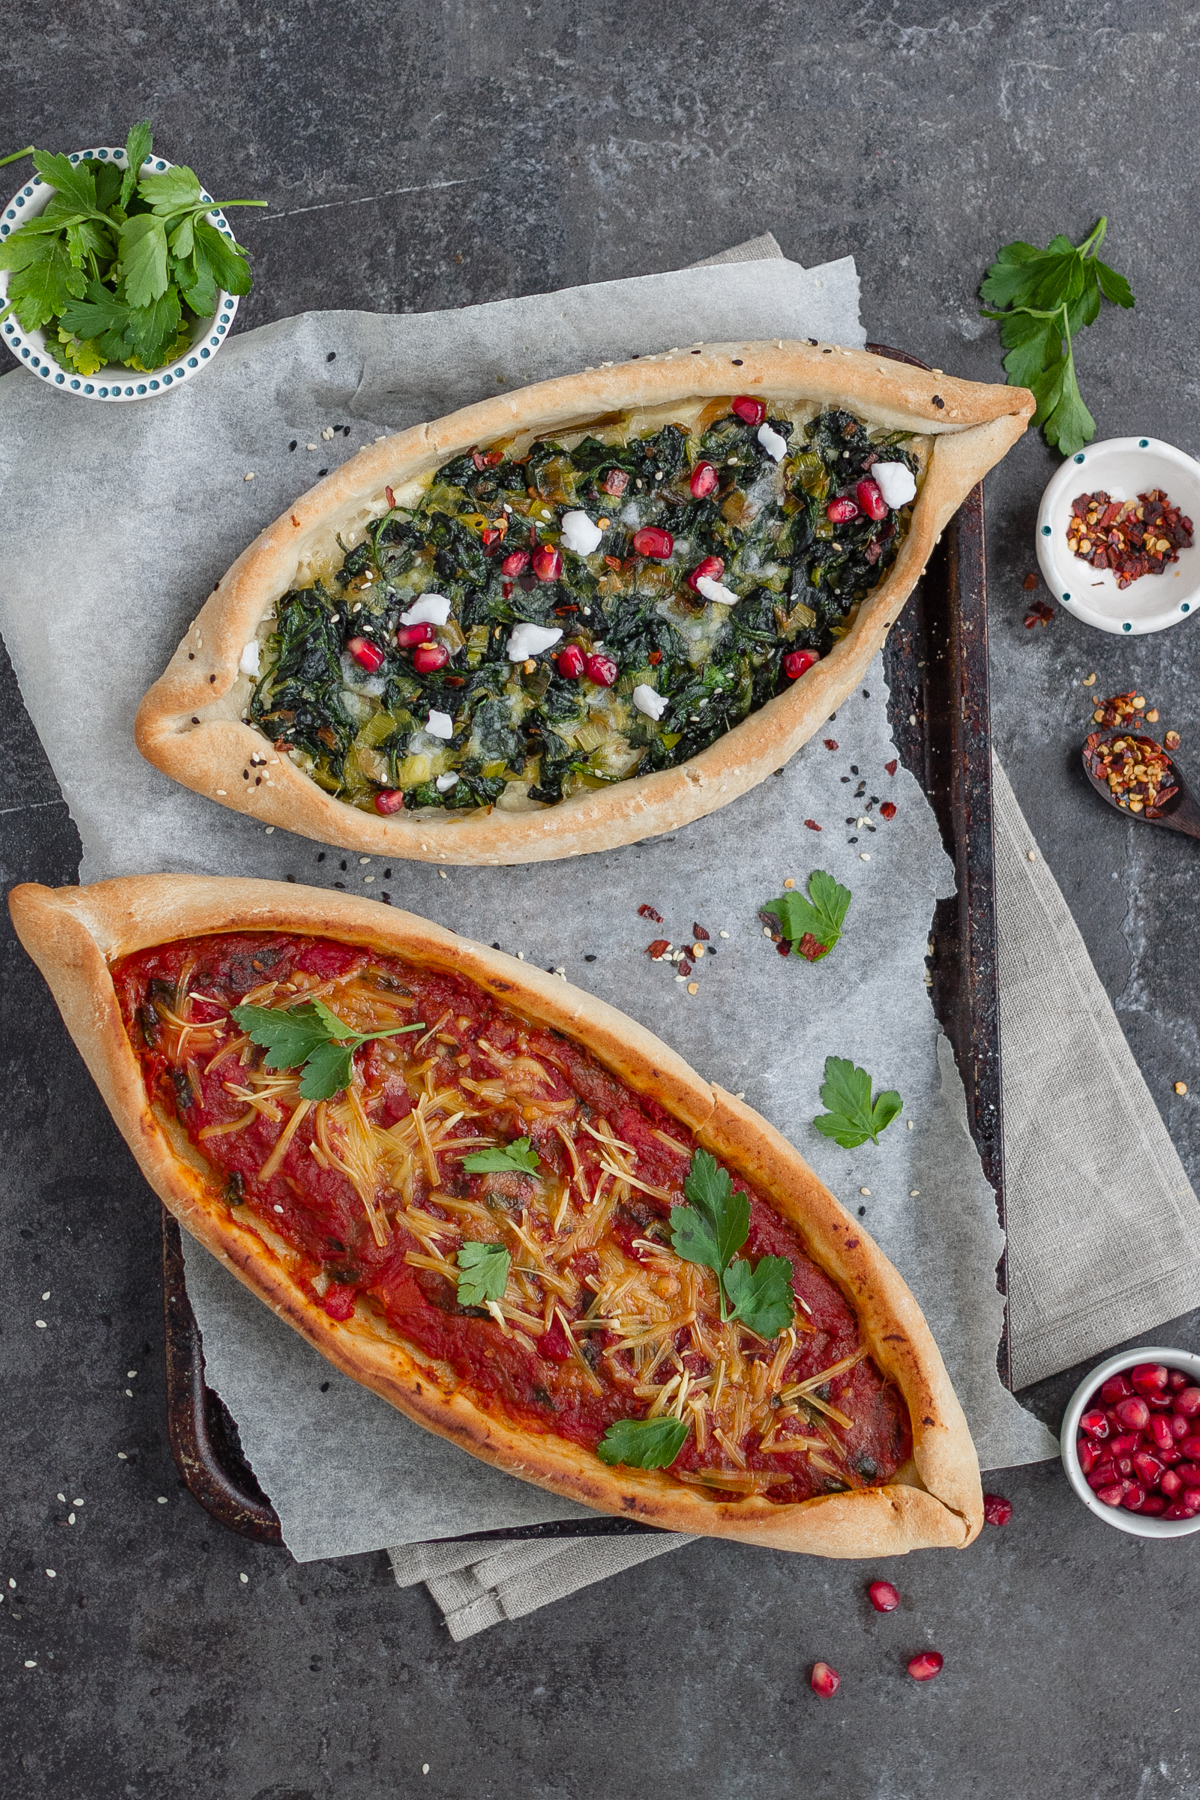 turkish vegan pide two ways; spinach,leek and vegan feta plus tomato, aubergine and red pepper toppings